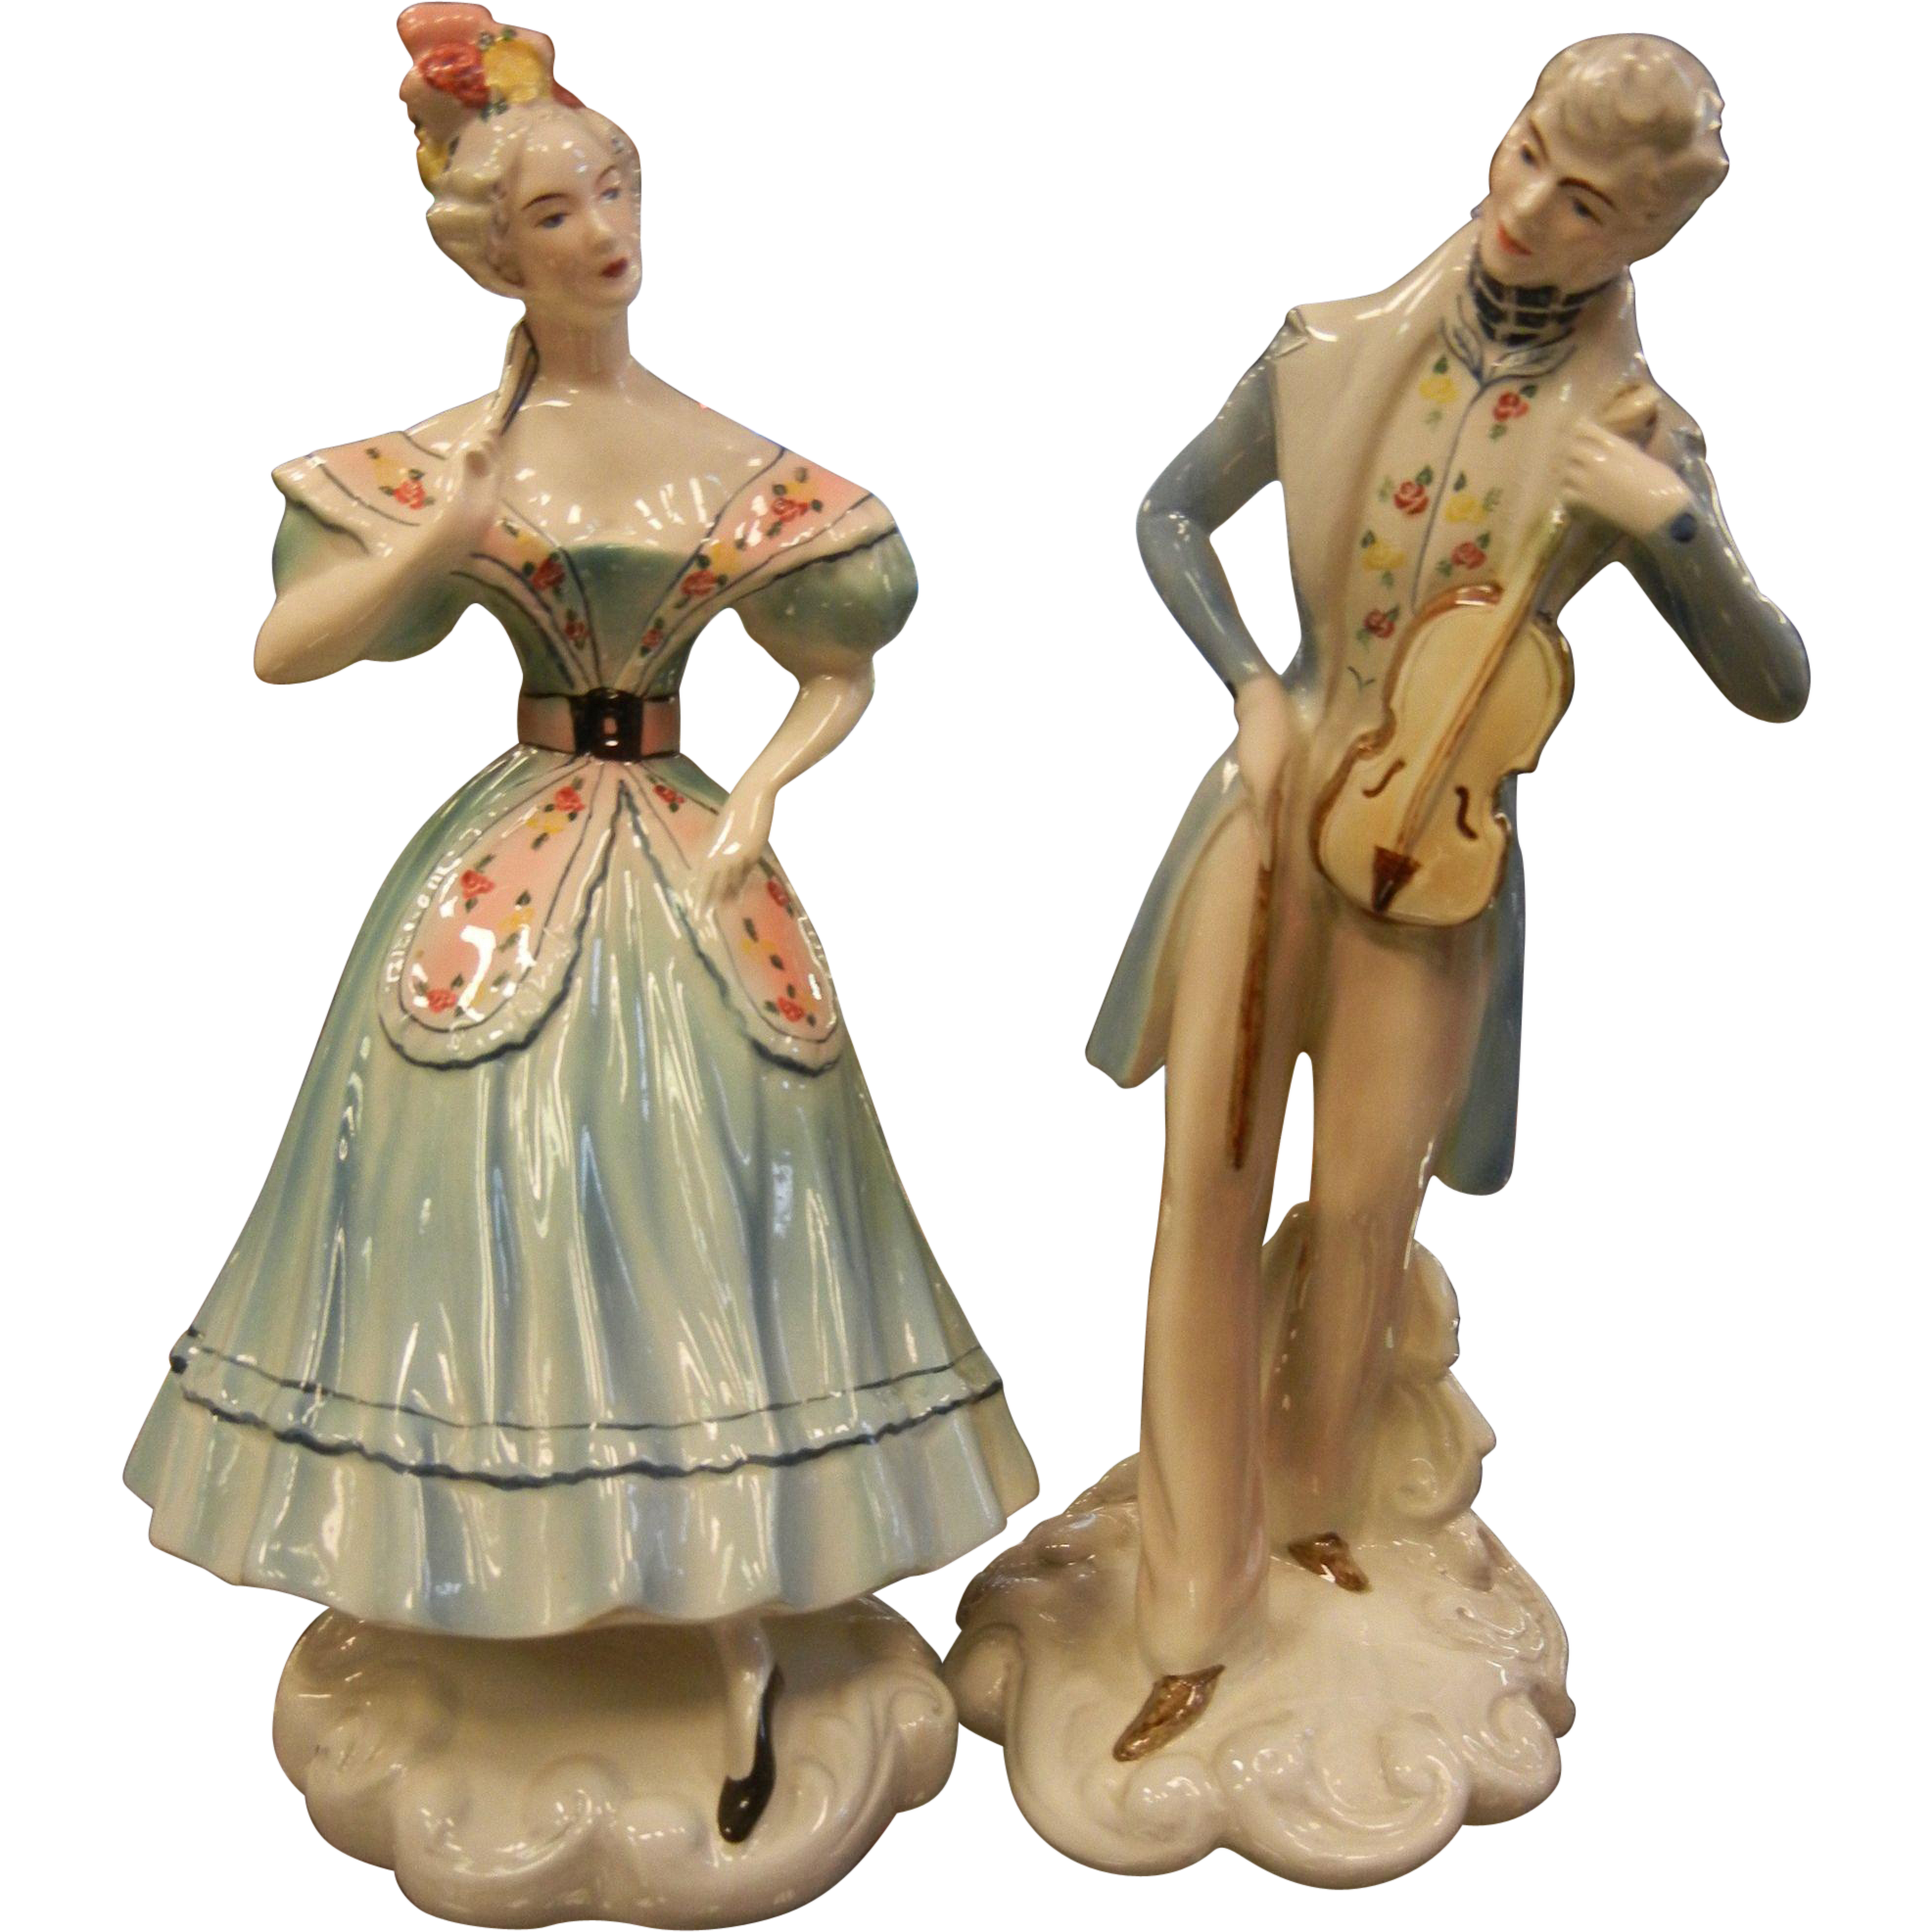 Fabulous Pair of Porcelain Figurines by Goldscheider USA